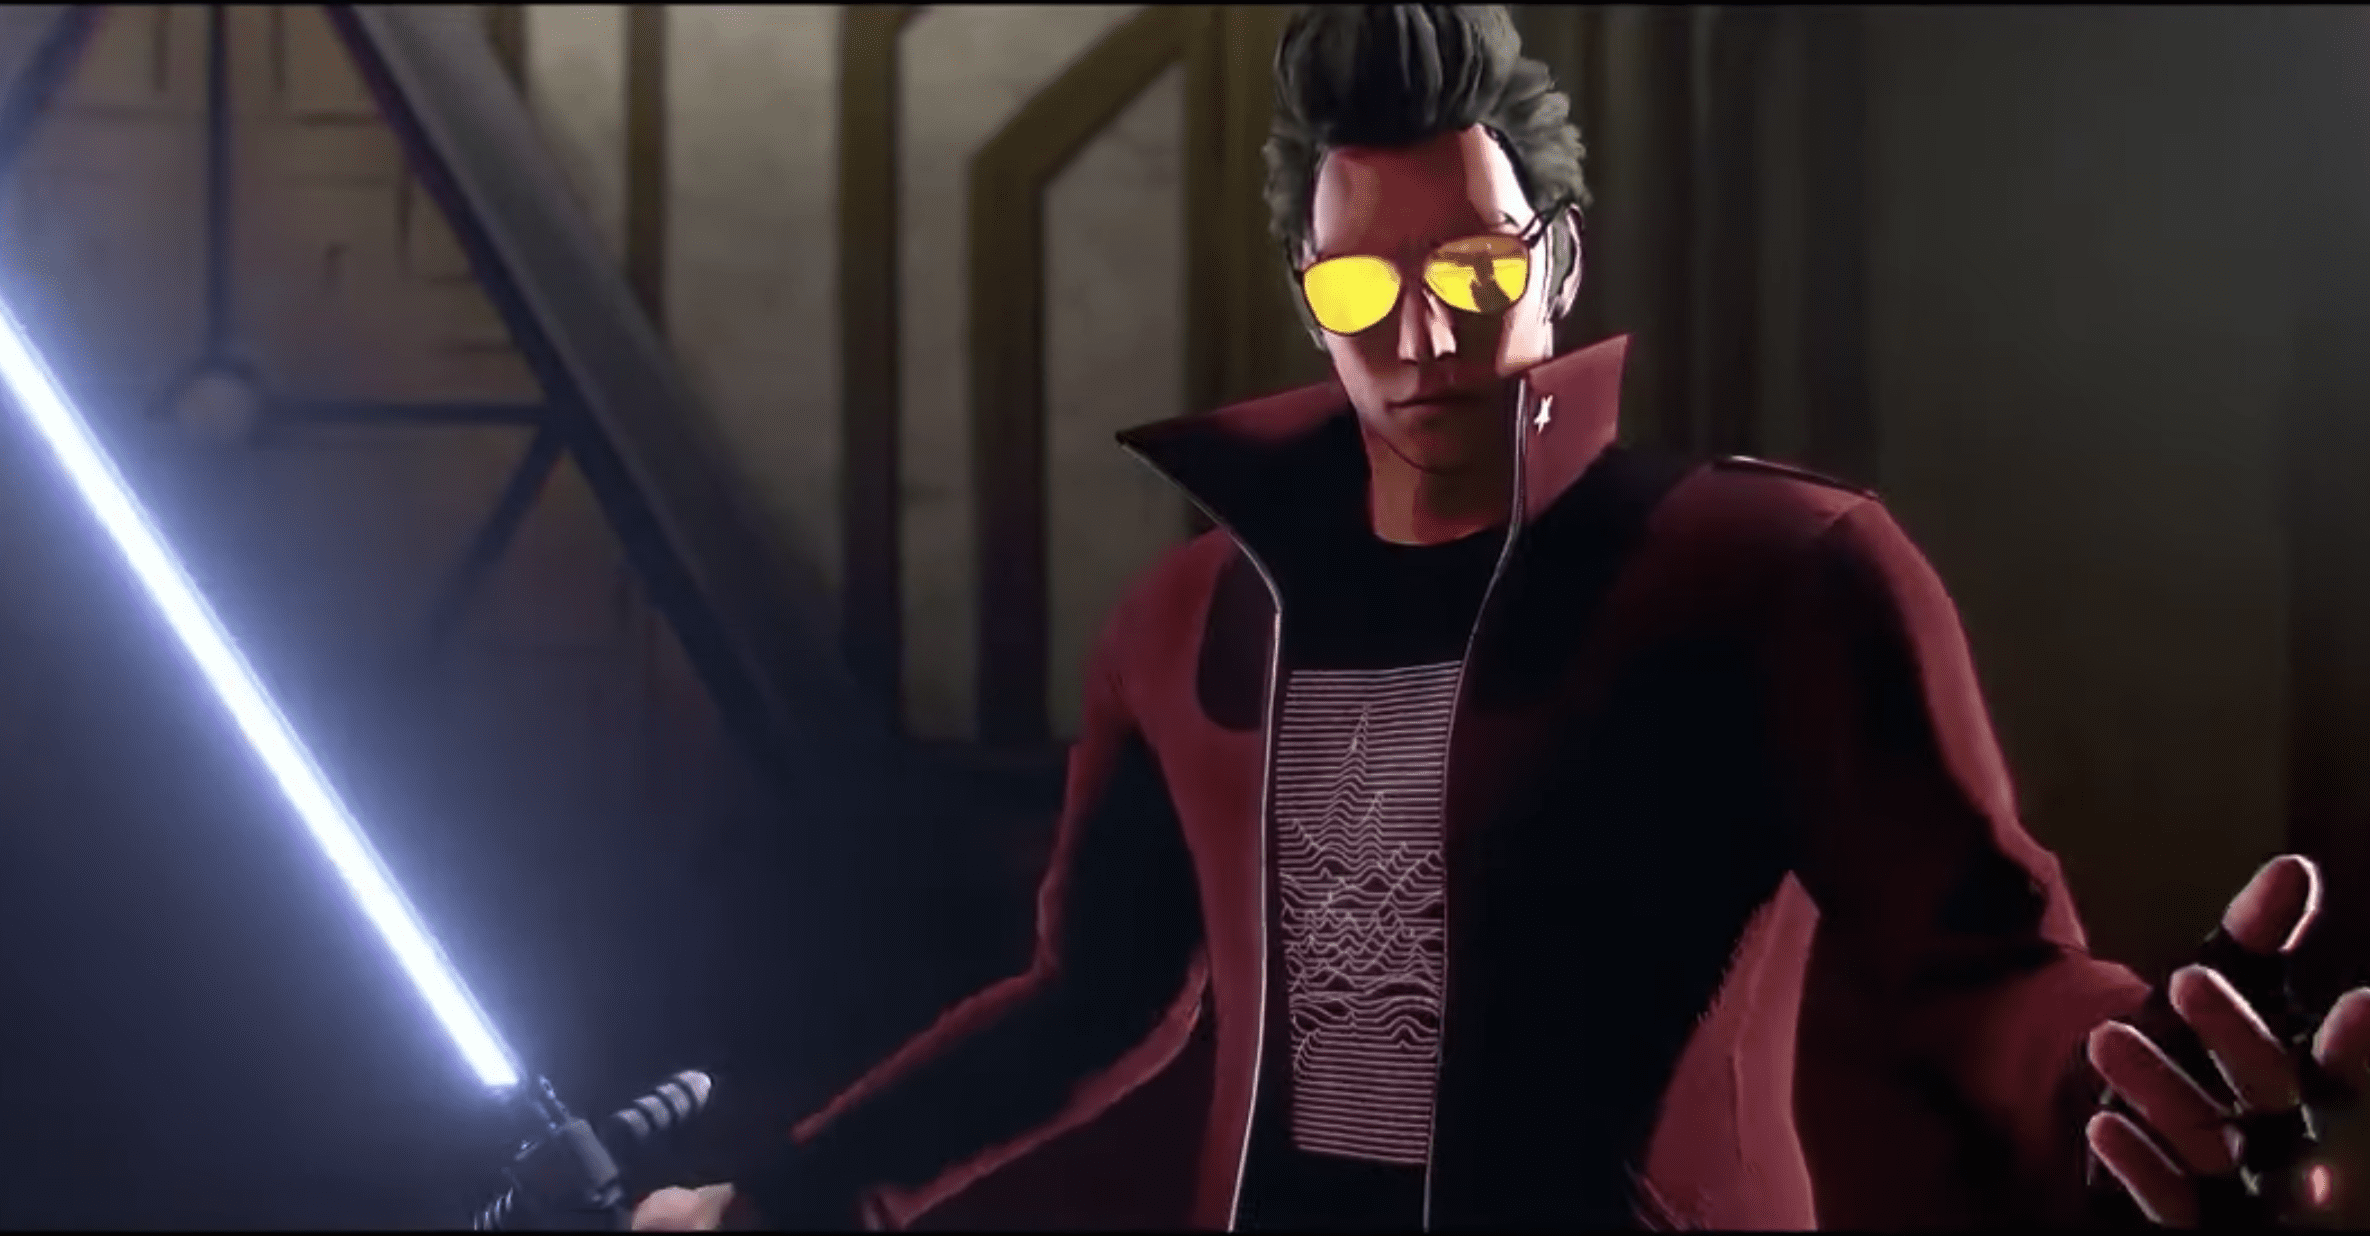 No More Heroes 3 update For Nintendo Switch